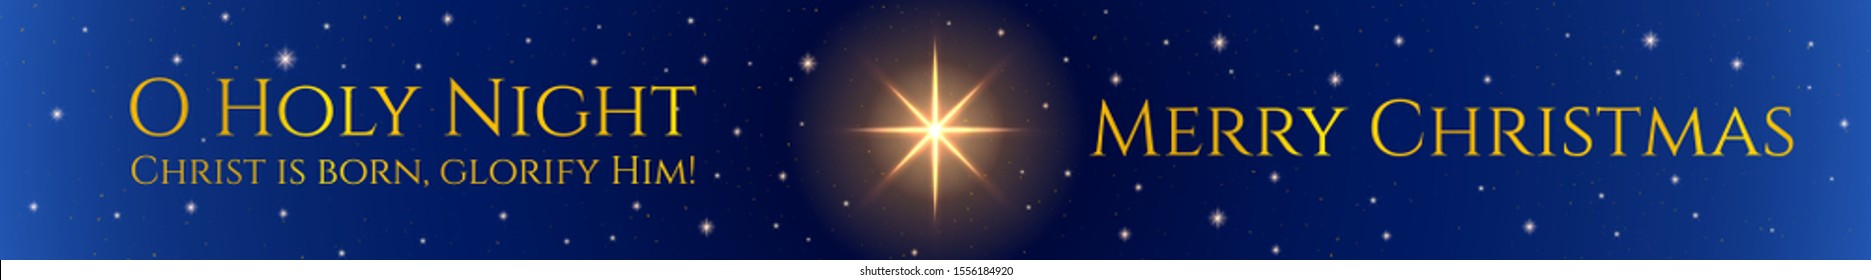 Christmas background (Merry Christmas holiday banner). Holy night vector illustration. Night sky with Christmas star and starry sky